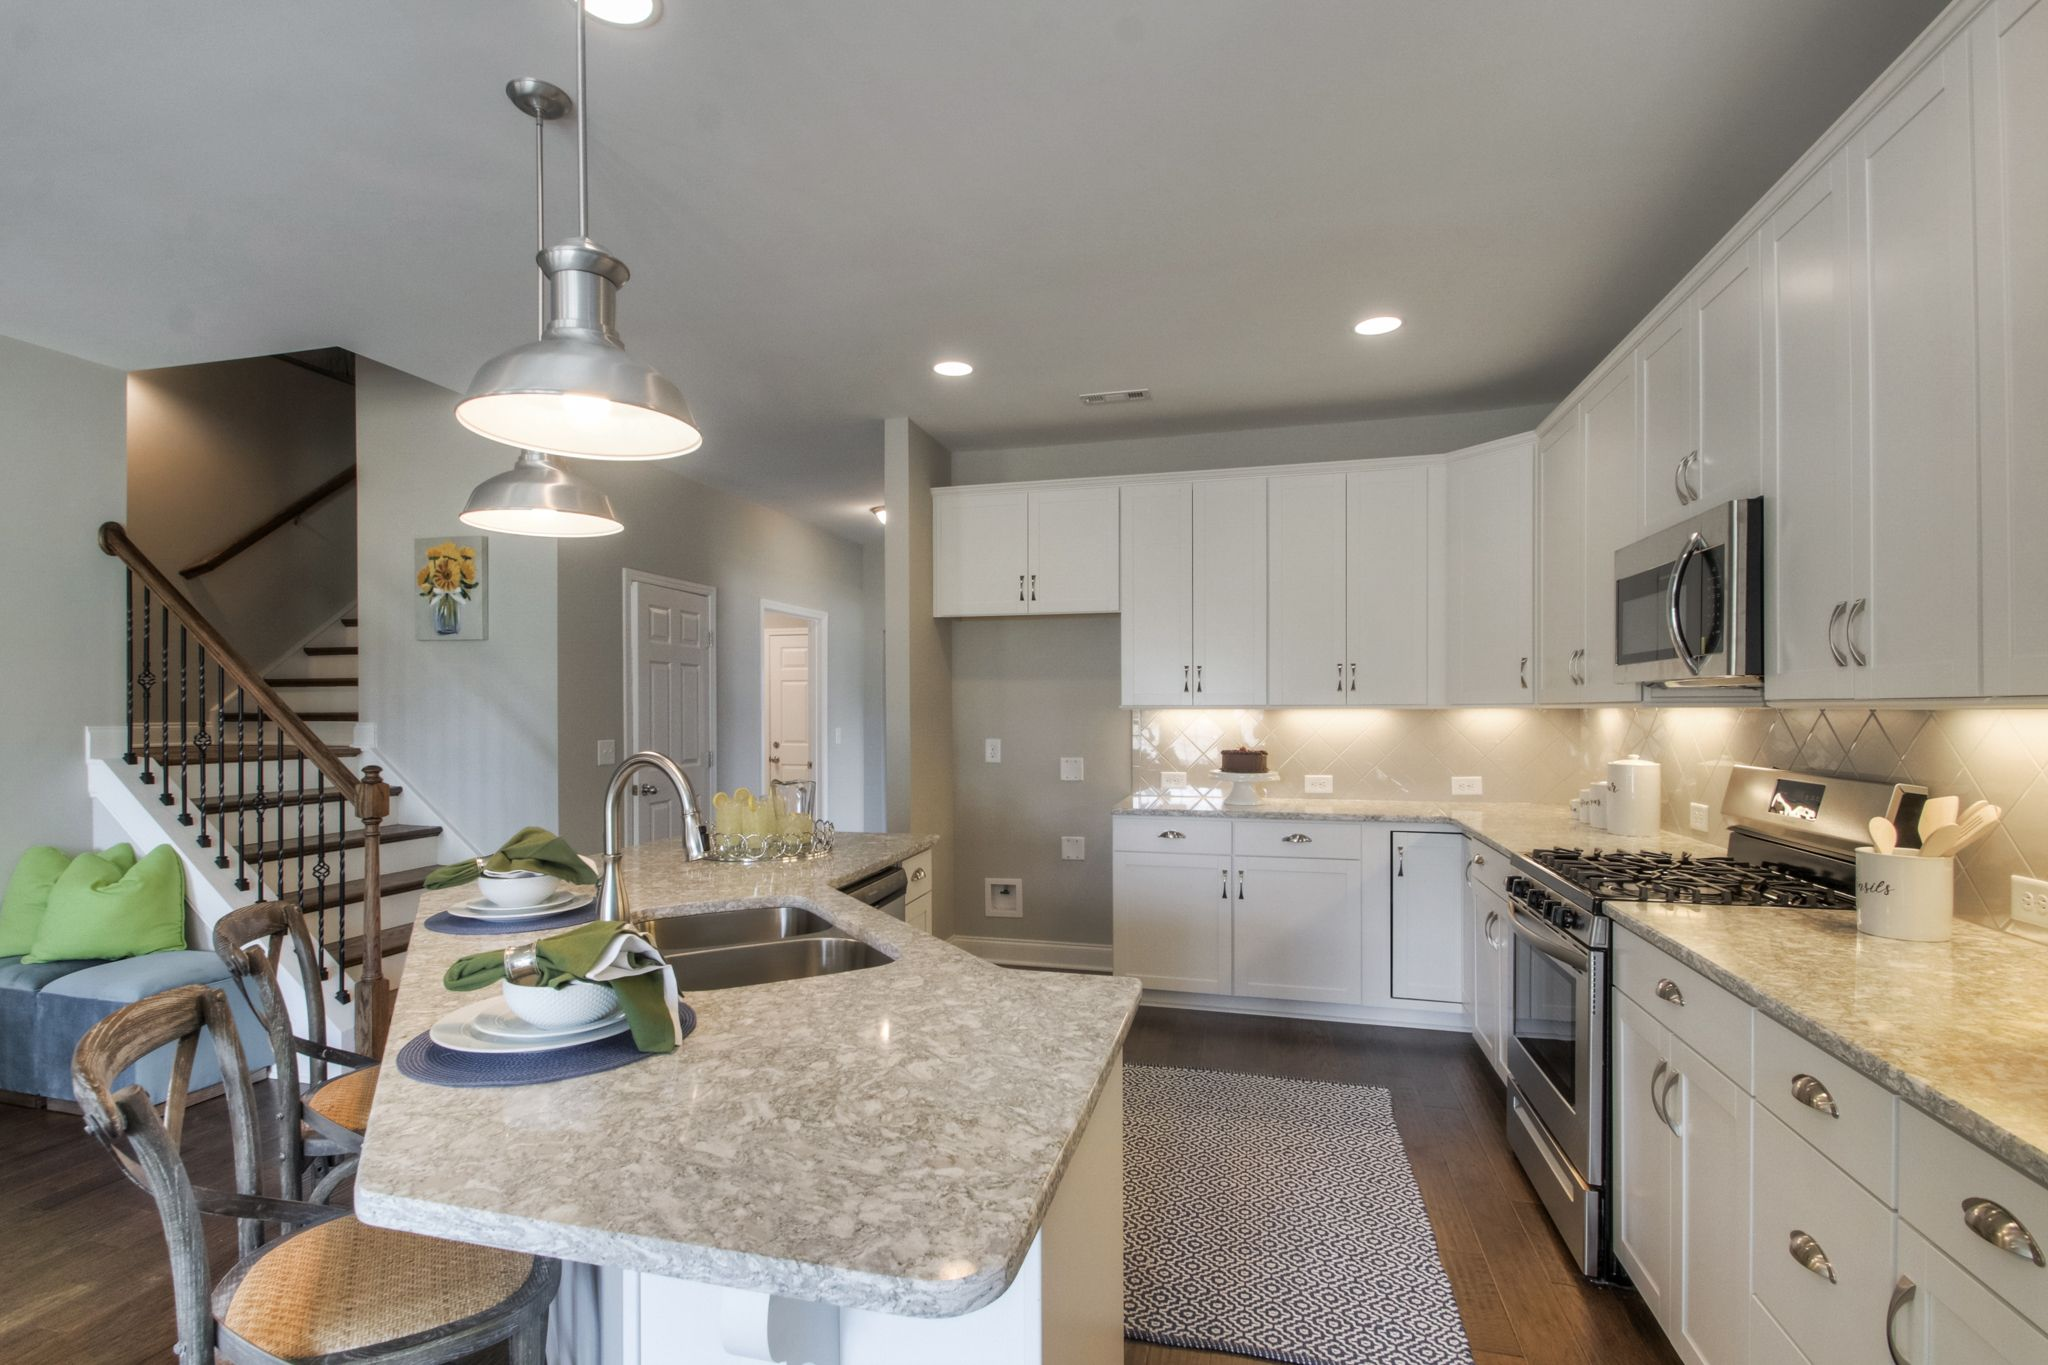 Kitchen featured in The Arlington By Goodall Homes in Nashville, TN